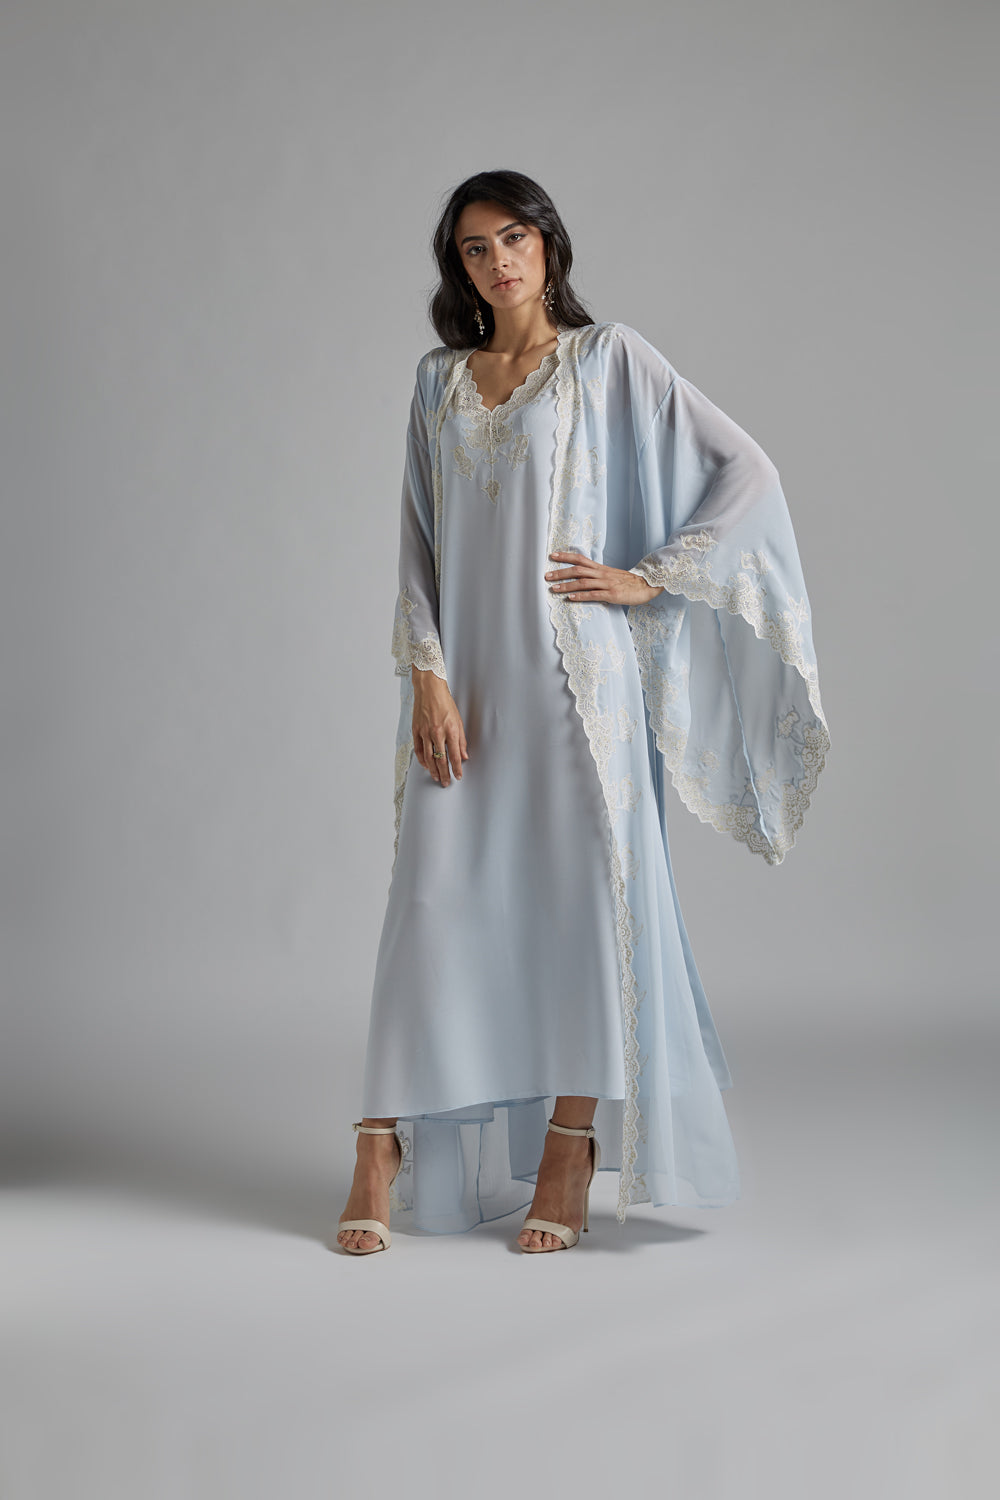 Silk Chiffon Baby Blue Robe Set - Tiera in Blue